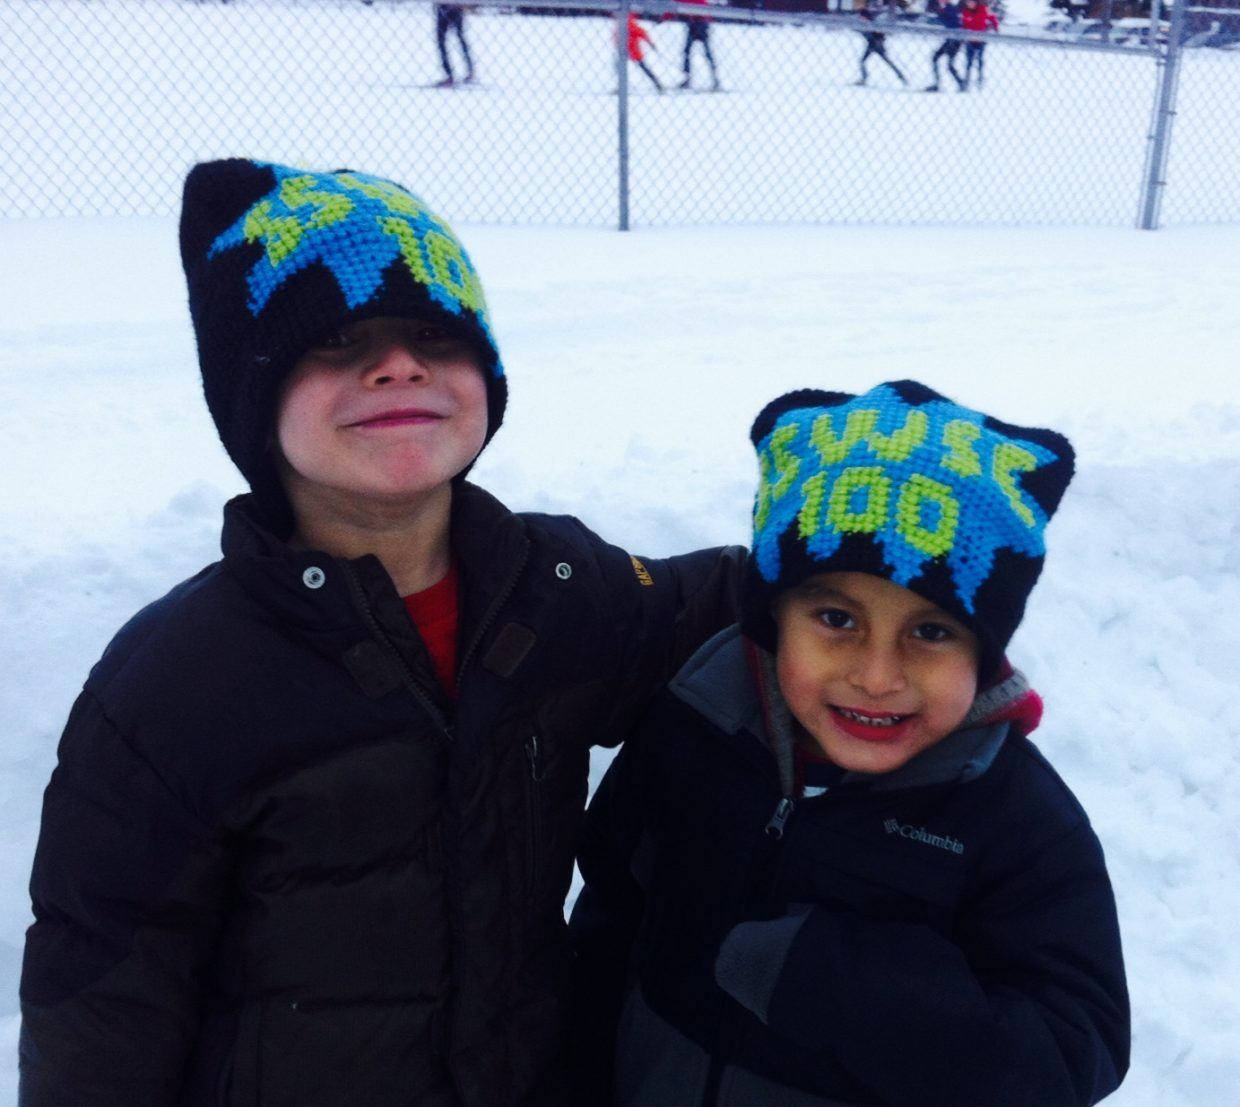 Mateo and Marc Rodriguez, U6, celebrating 100 years of the Steamboat Springs Winter Sports Club. Submitted by: Kelley Rodriguez